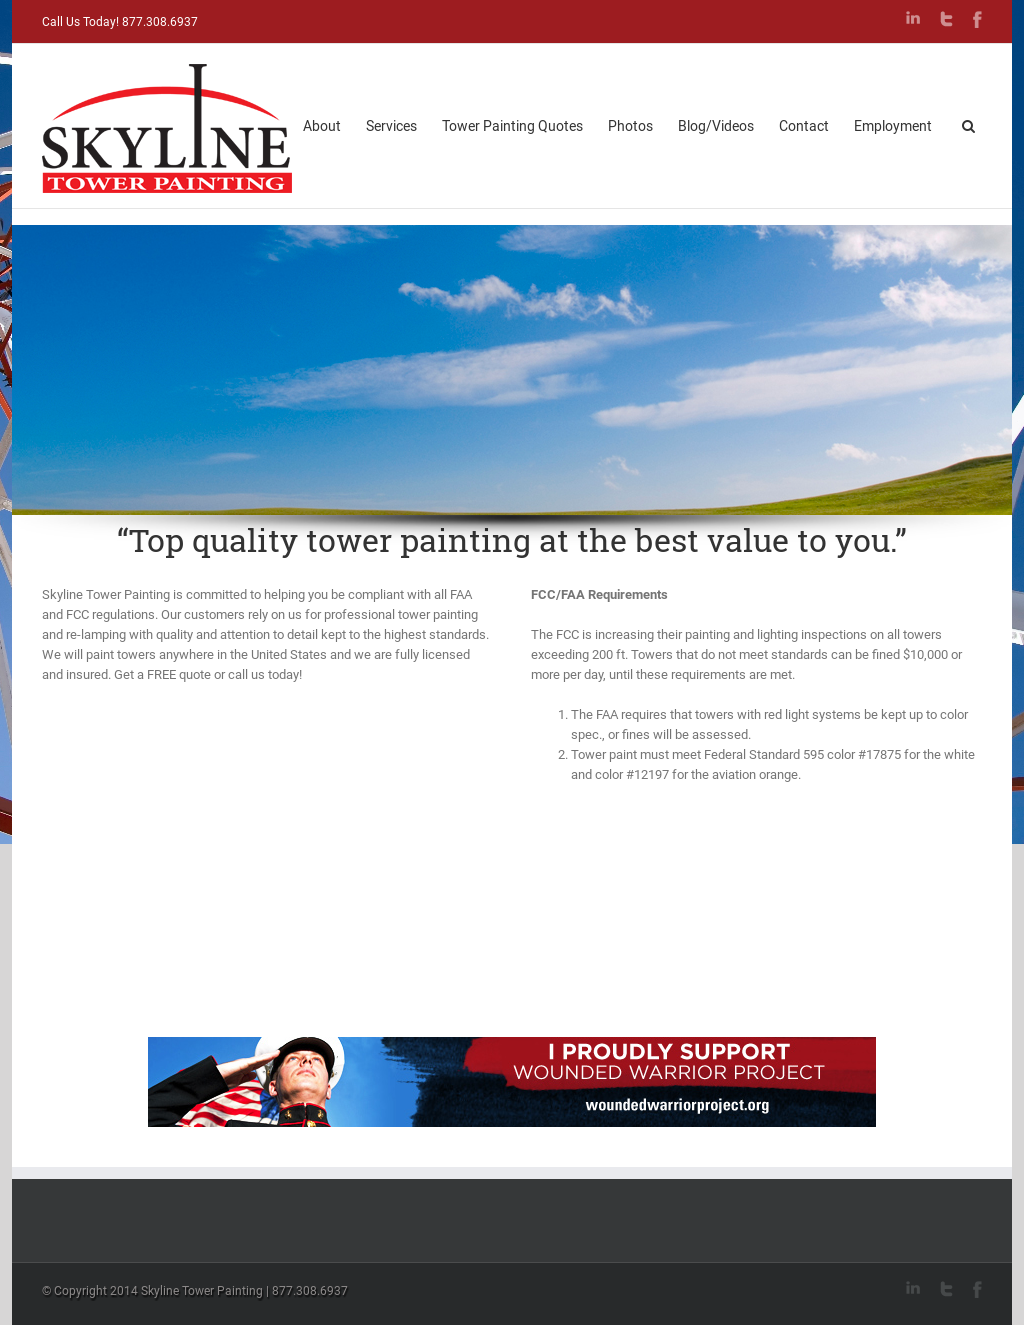 Skyline Tower Painting Competitors, Revenue and Employees